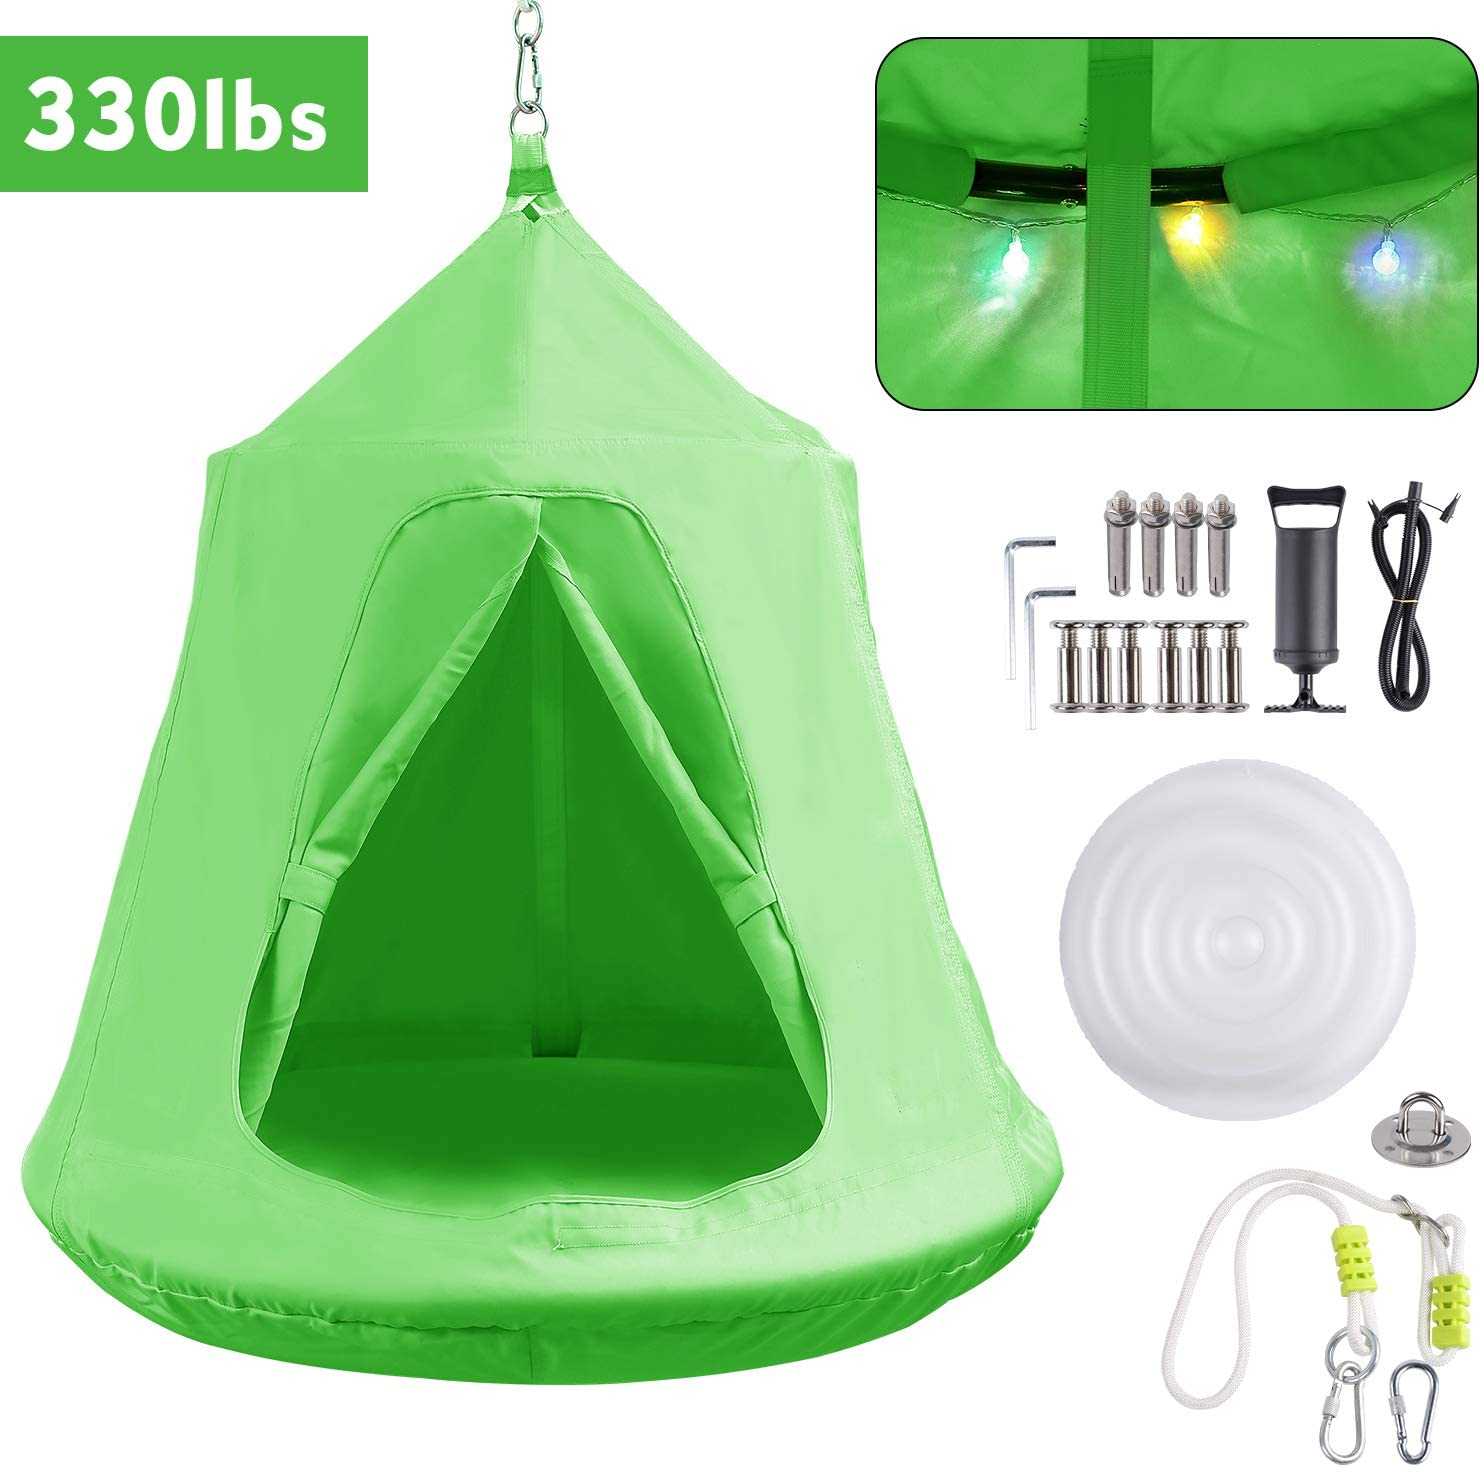 GARTIO Hanging Tree Tent, Swing Play House, Portable Hammock Chair, with LED DecorationLights, Inflatable Cushion, Suit for Adult and Kids Indoor Outdoor, Max Capacity 330lbs (Green)